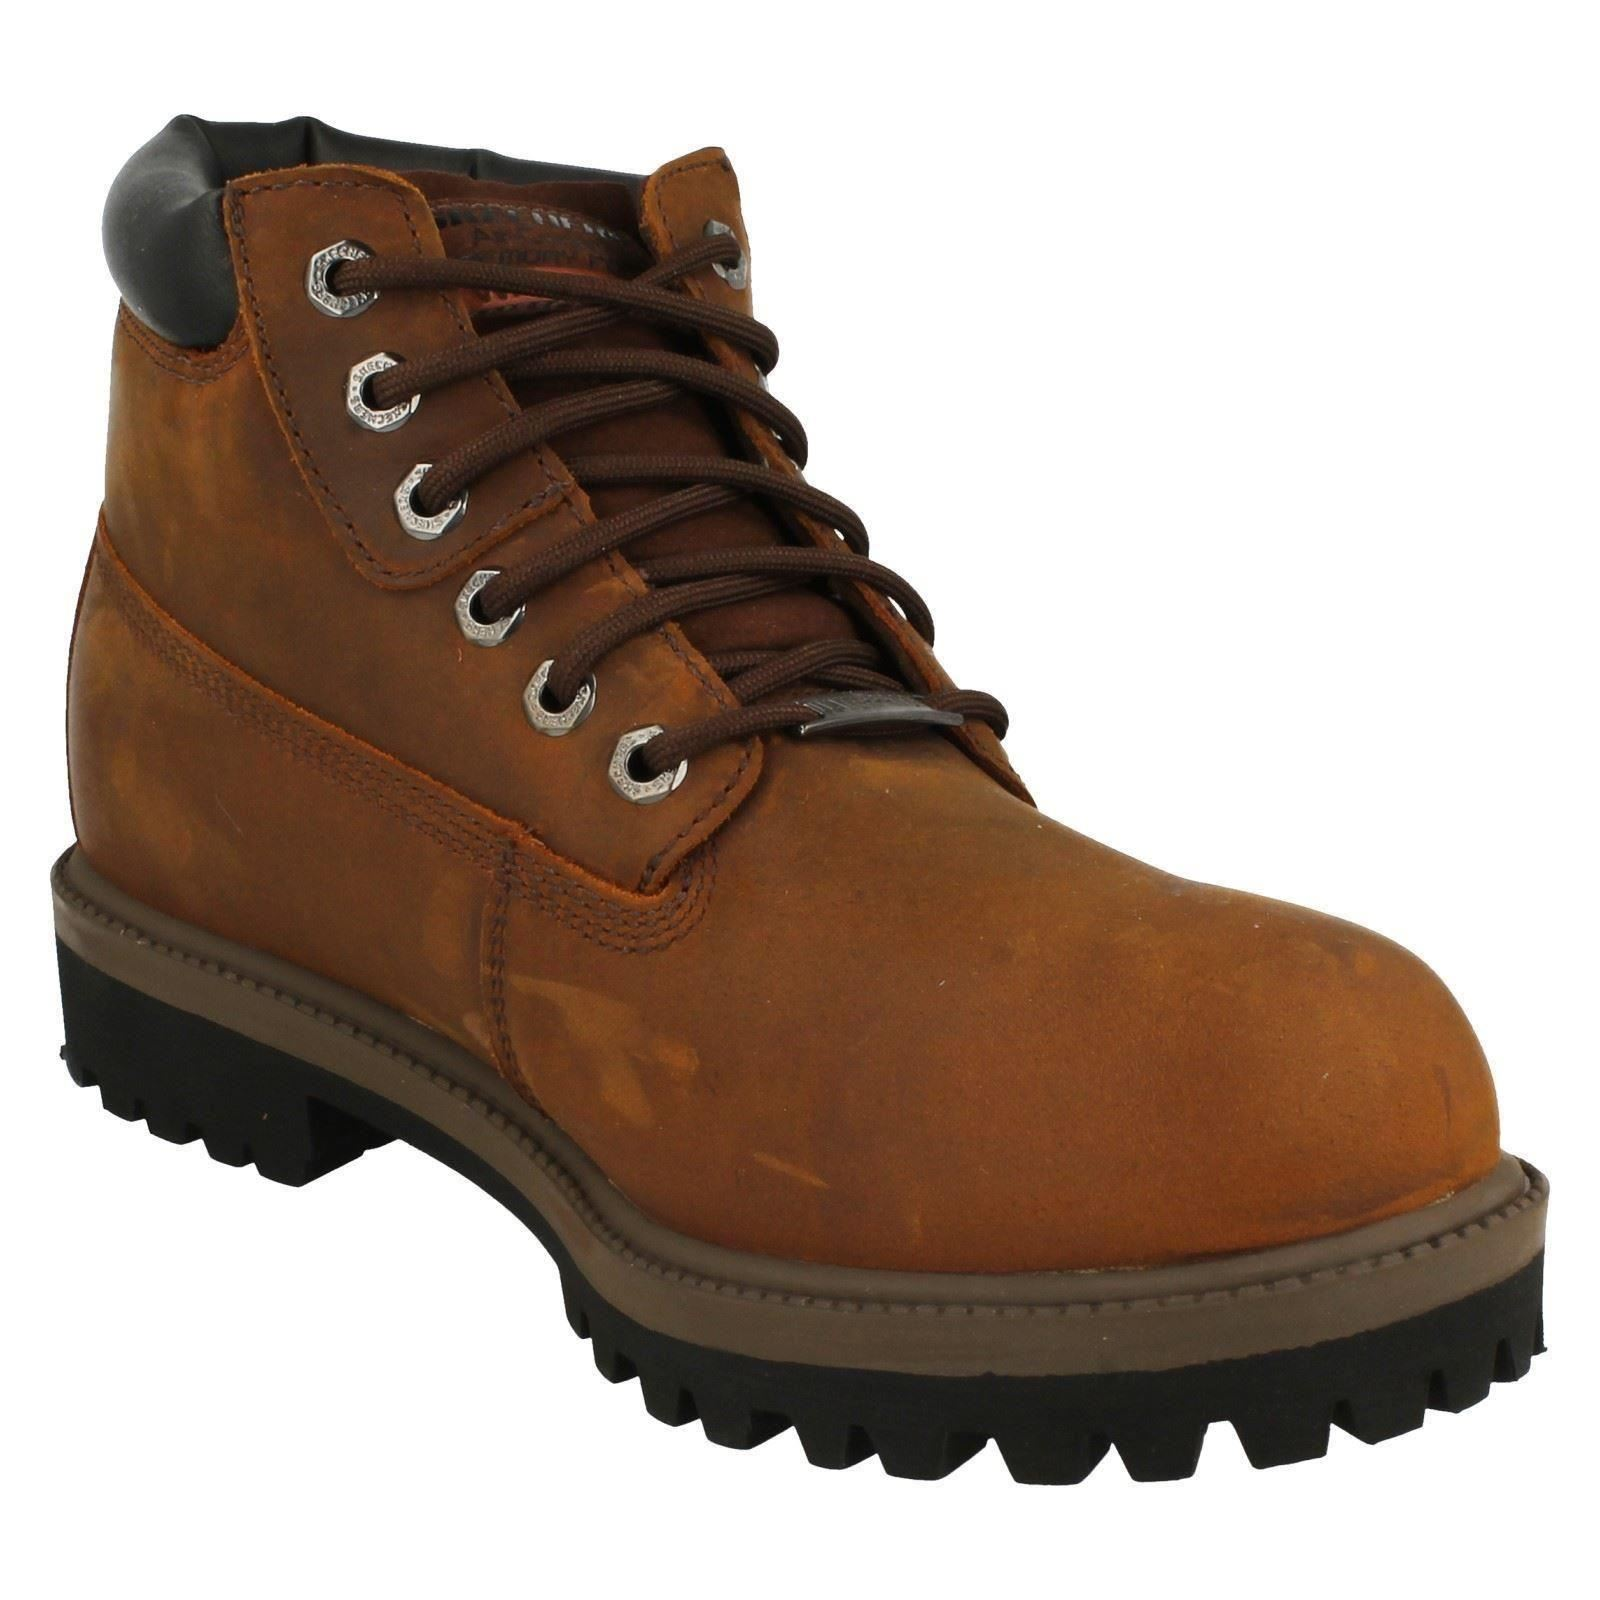 Skechers - Skechers Shoes Outlet Store Sale Skechers Shoes, Skechers Boots, Skechers Go Walk, Go Walk 3 For Men's and Women's, Fast Shipping & High Quality.